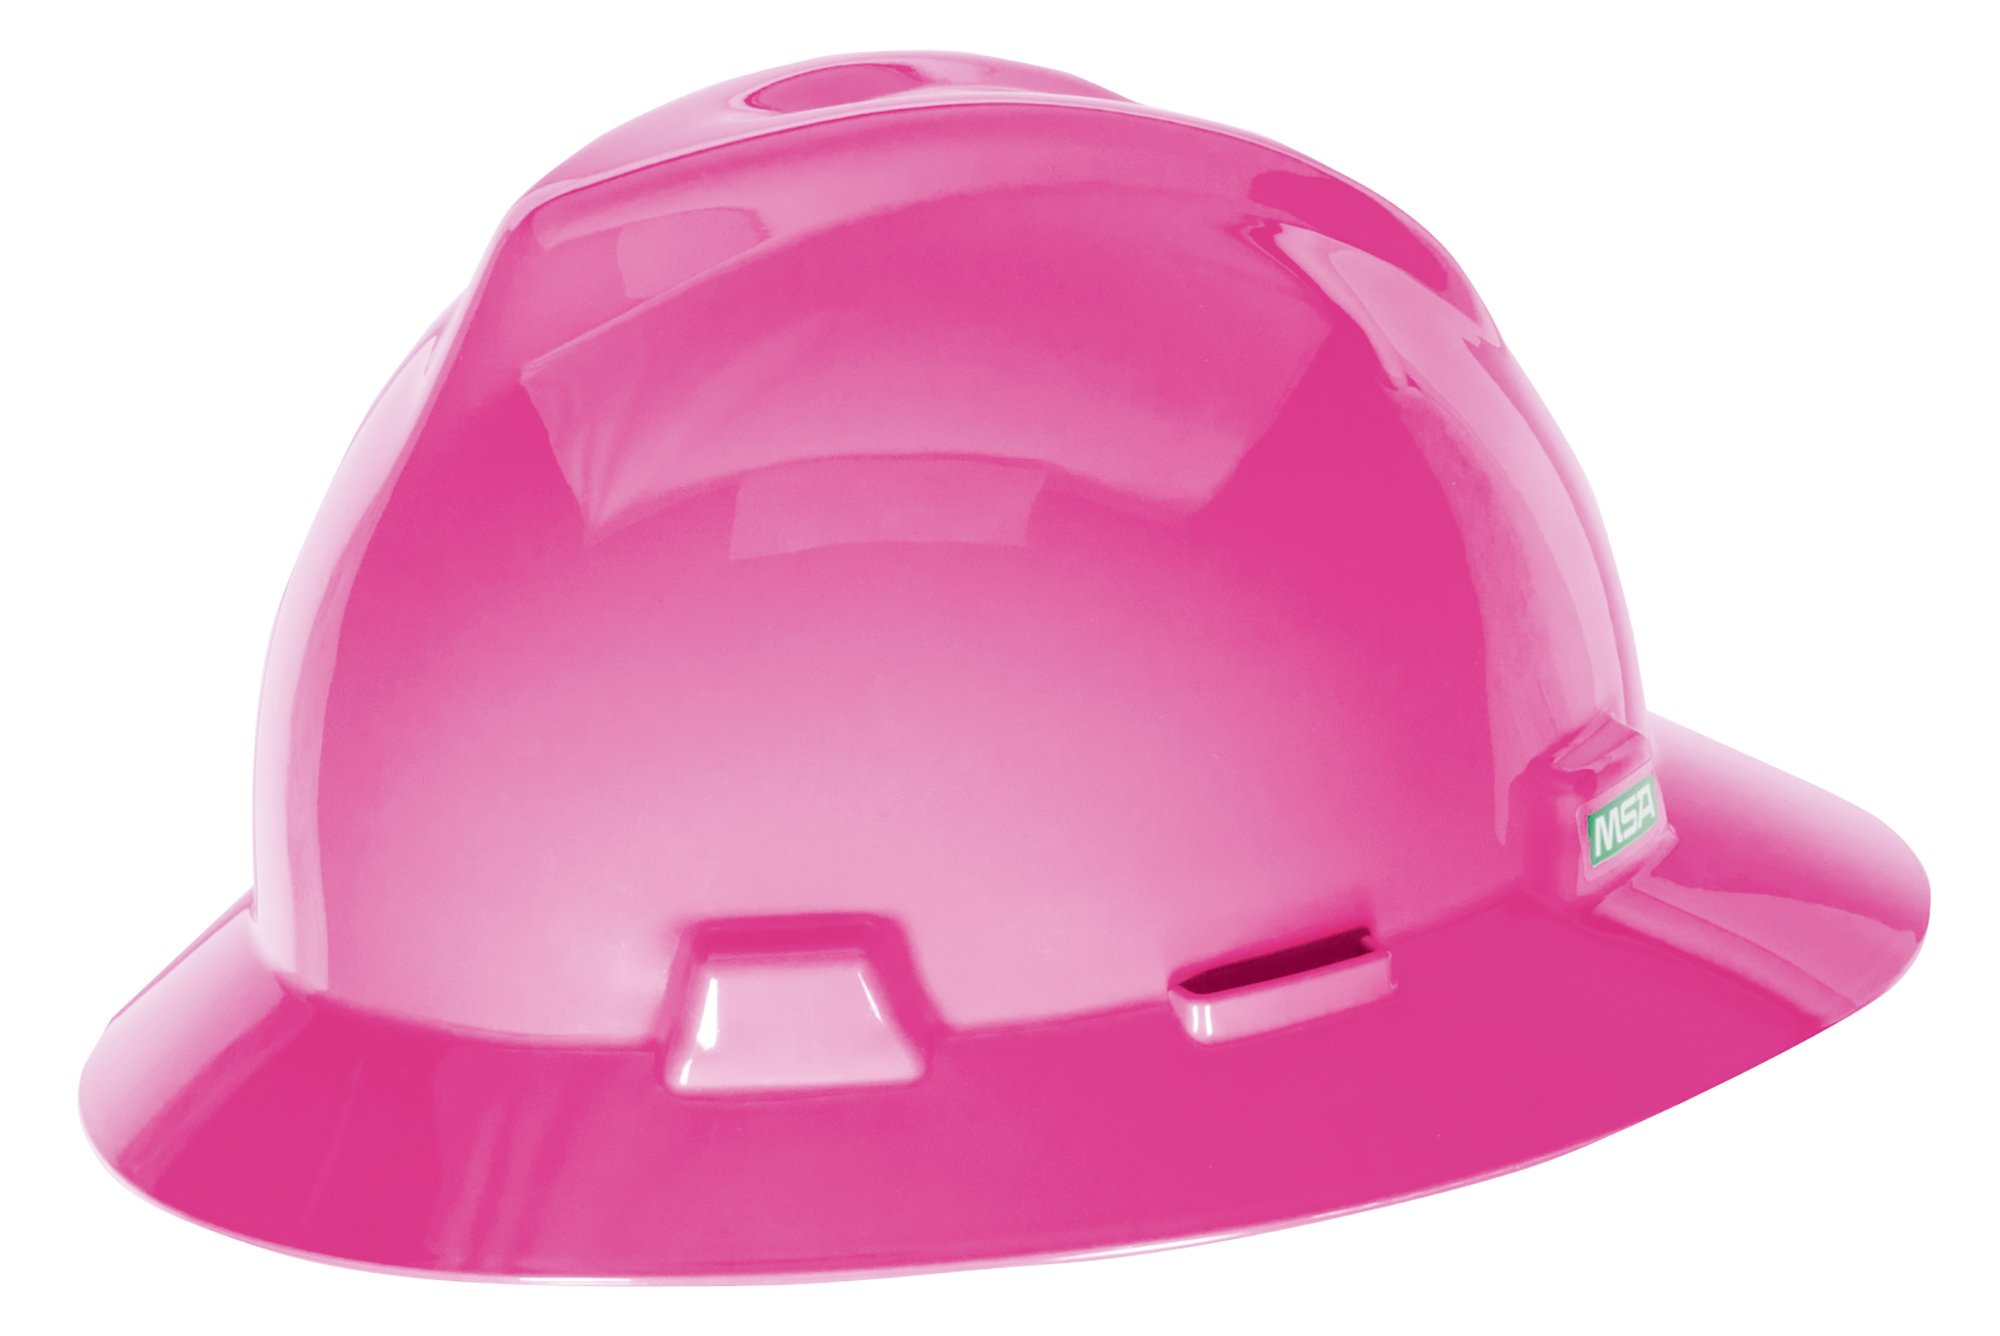 MSA 10156373 V-Gard Slotted Full-Brim Hat, Hot Pink, w/Fas-Trac III Suspension by MSA (Image #1)